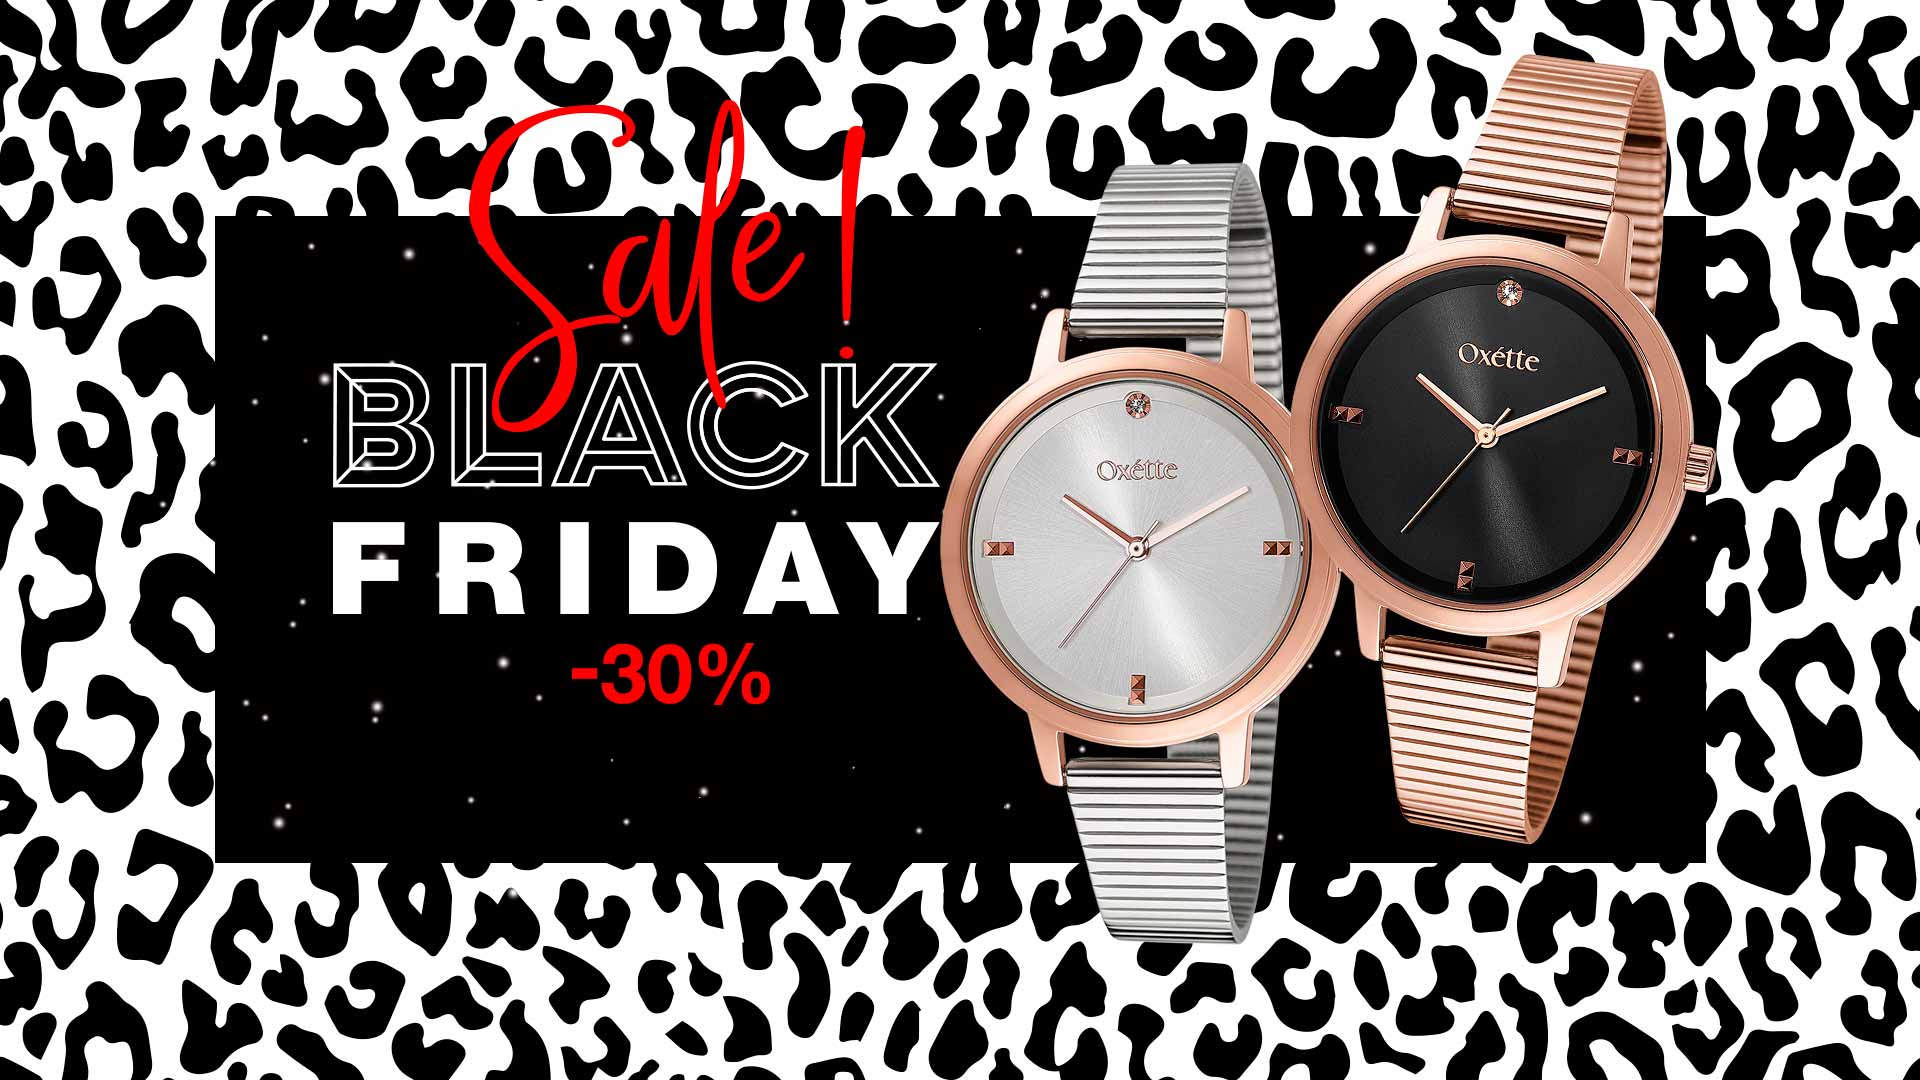 Black Friday 2020 - Oxette